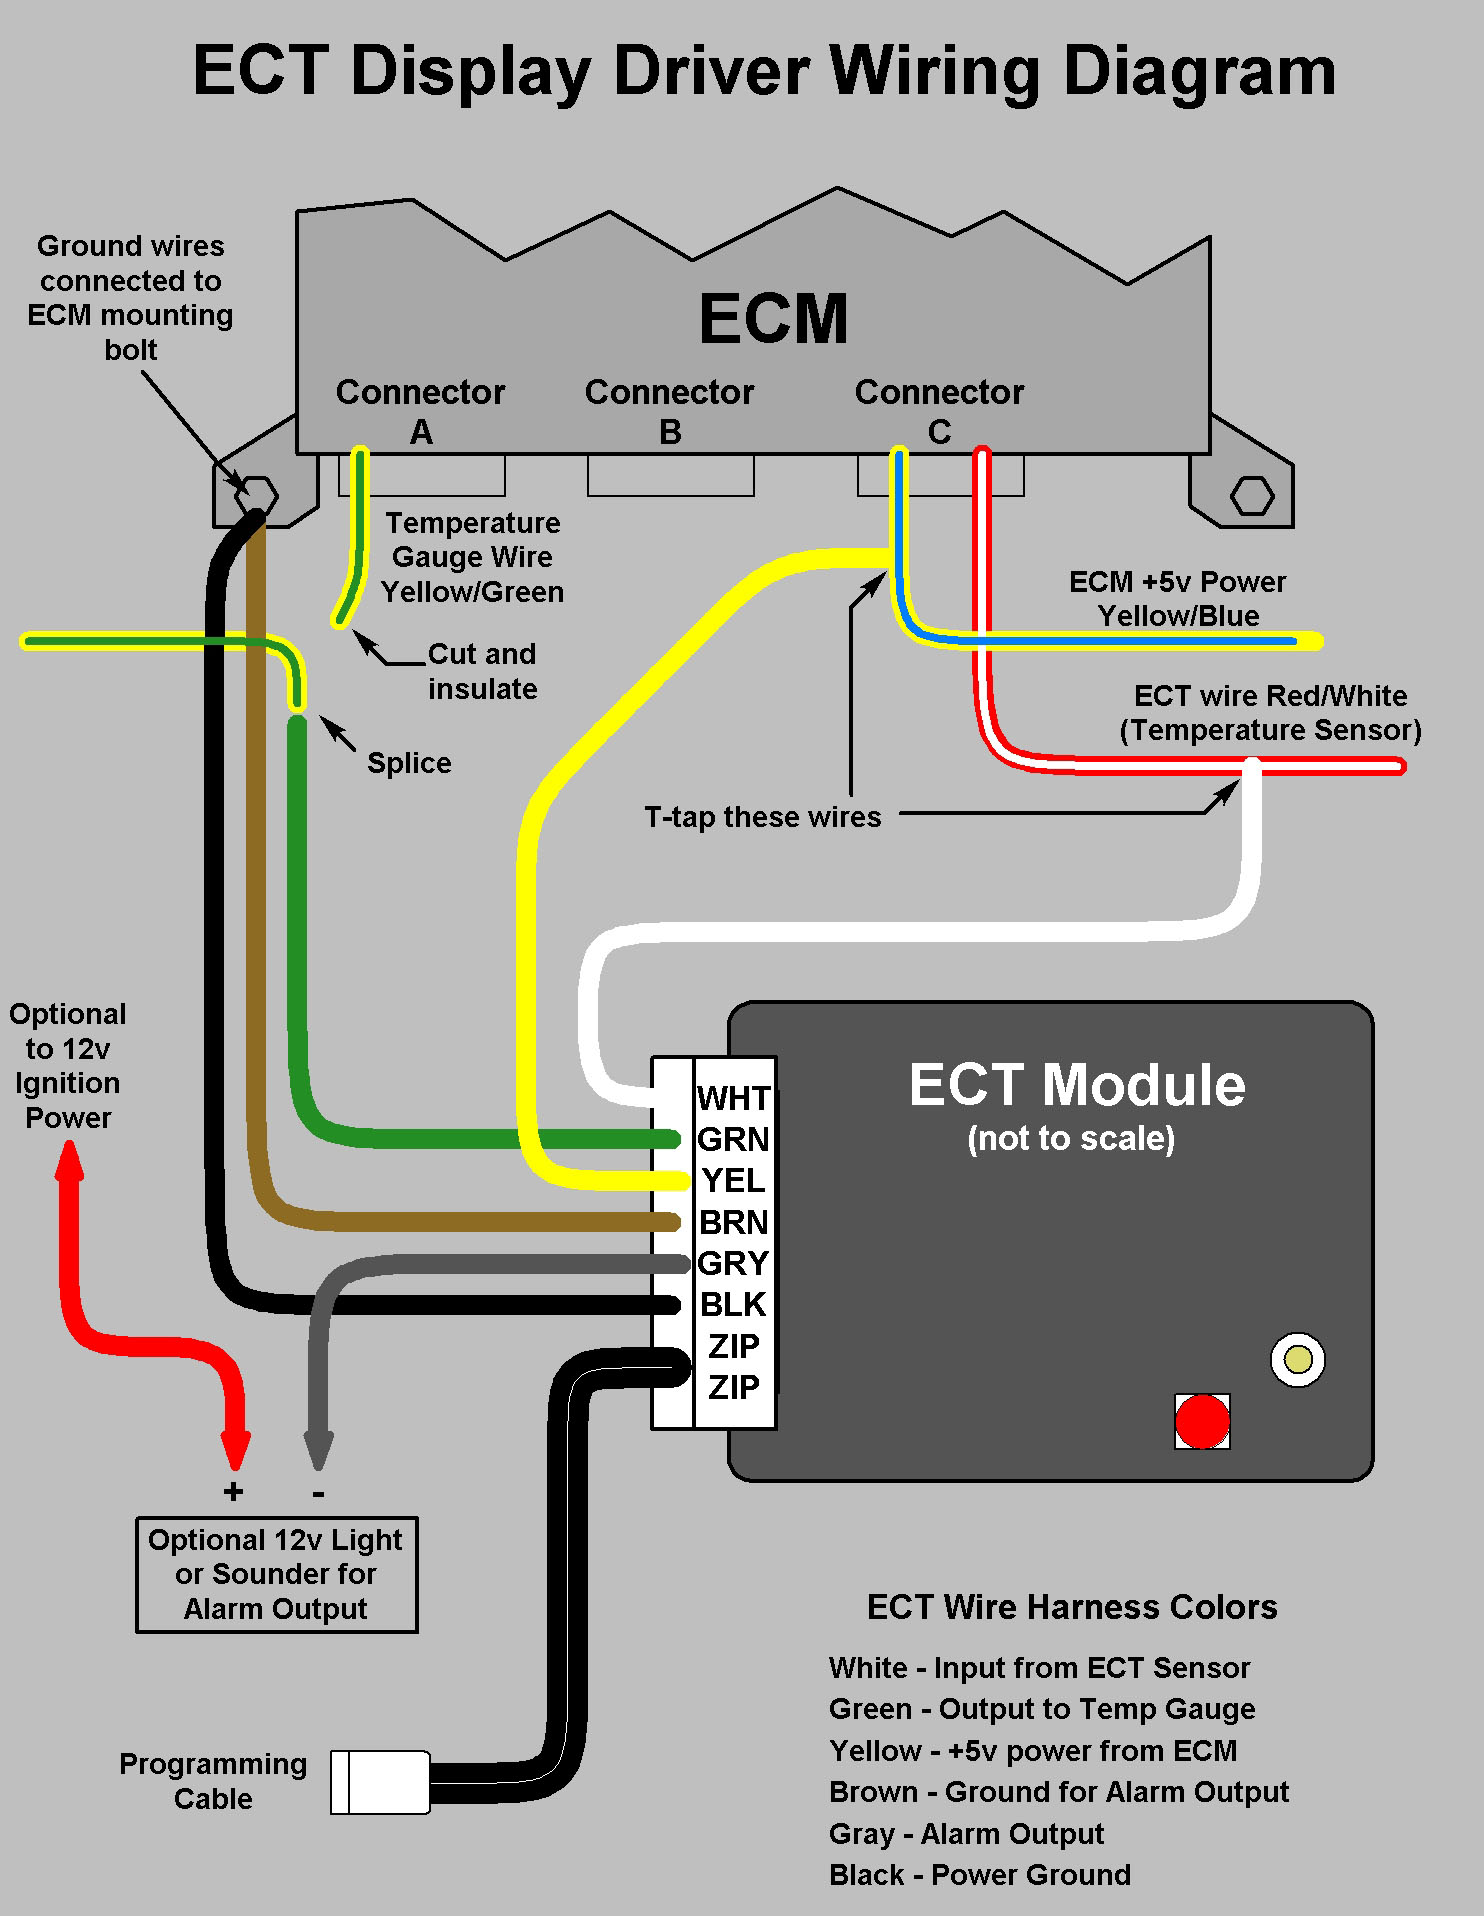 ECT wiring diagram ems wiring diagram management system \u2022 wiring diagrams j squared co edison plug wiring diagram at creativeand.co